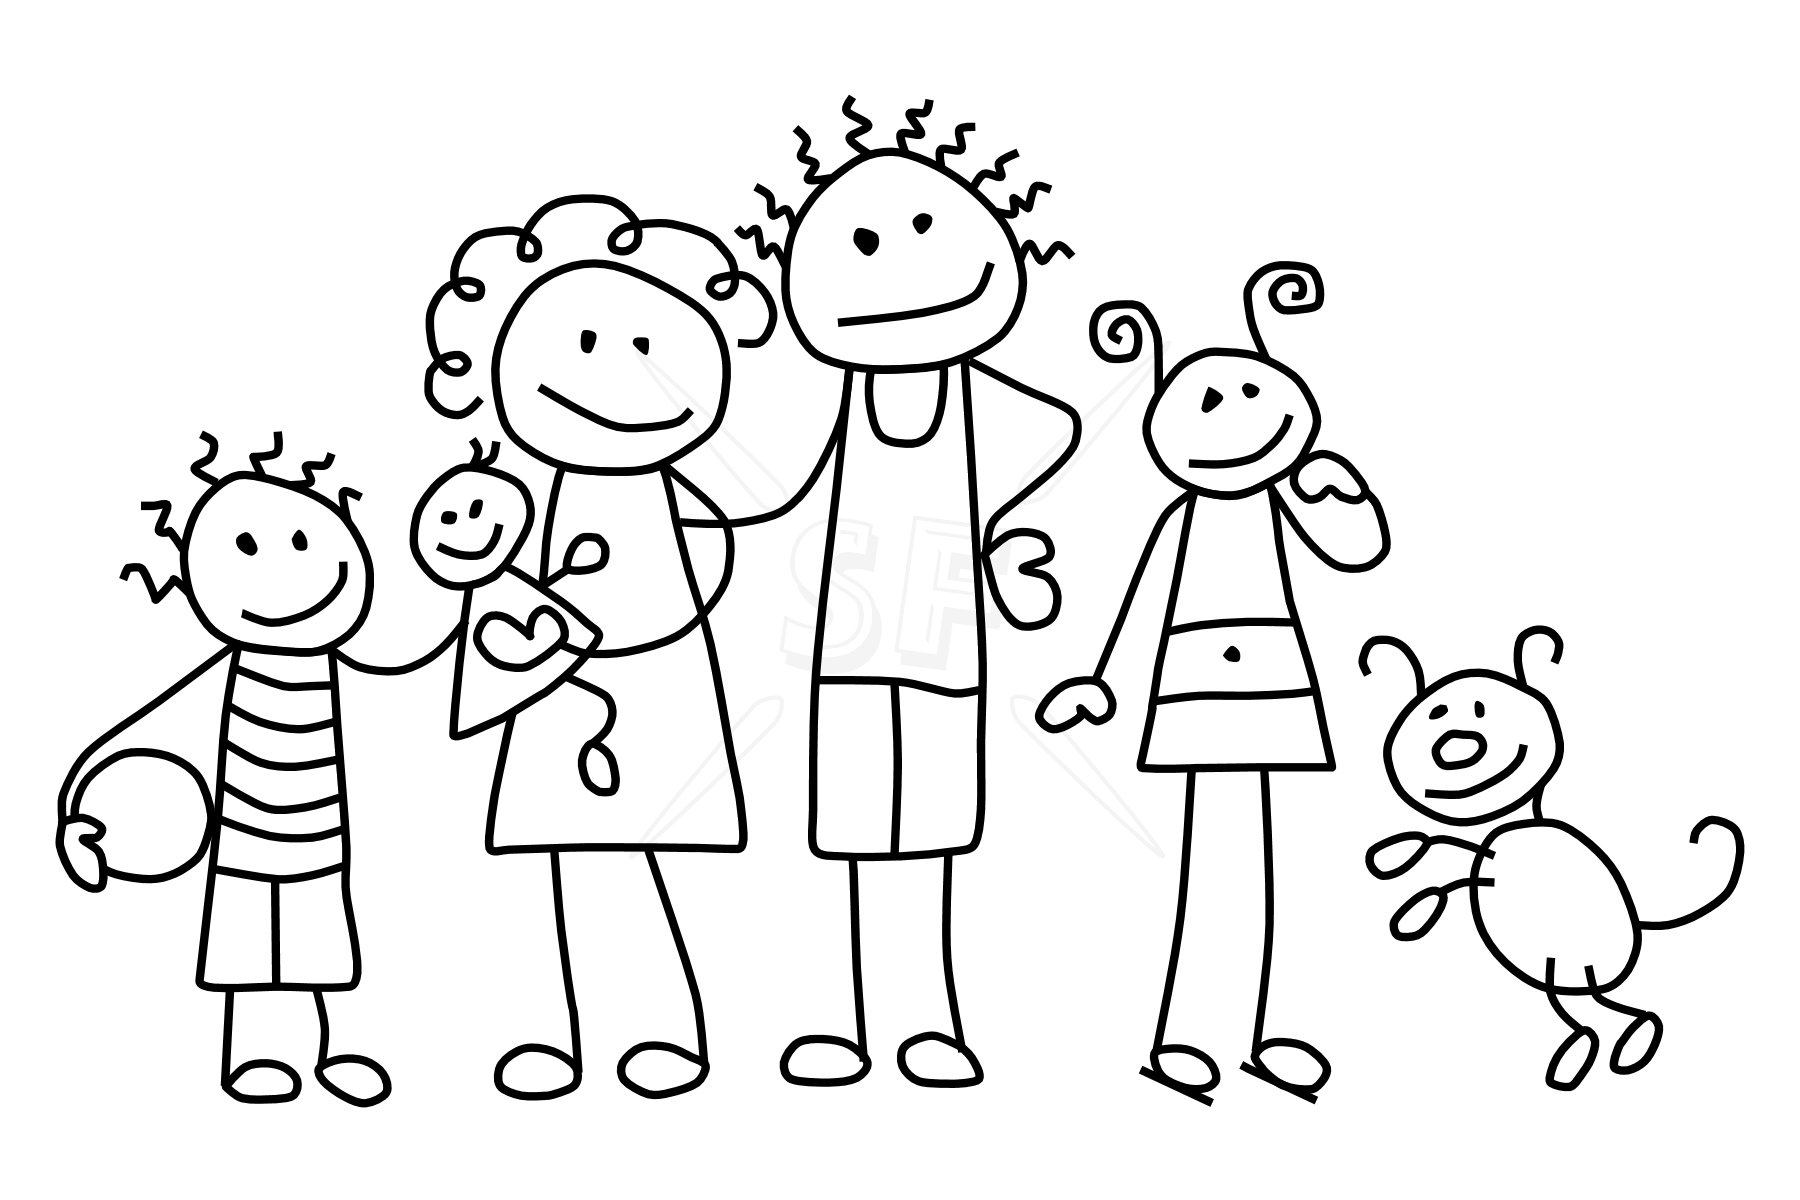 Stick Figure Families | From New York to San Francisconaturist family